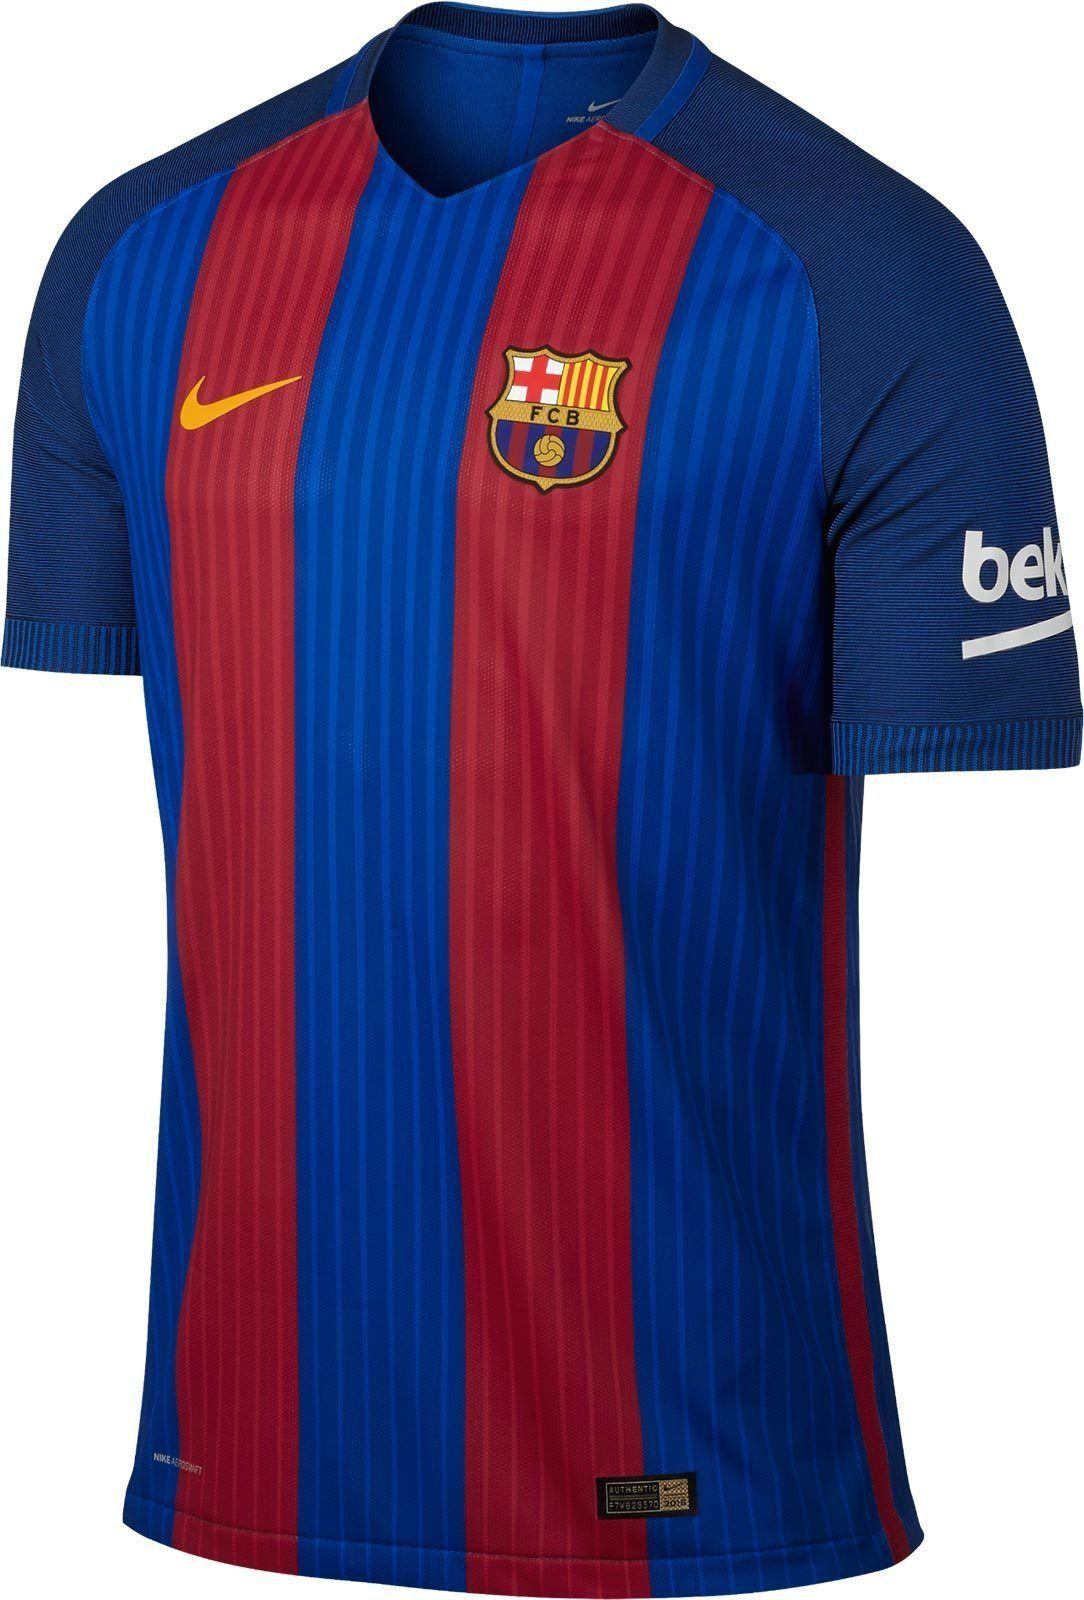 NIKE FC BARCELONA AUTHENTIC VAPOR MATCH HOME JERSEY 2016 17 ENGINEERED  SPEED The 2016 17 FC Barcelona Vapor Match Home Men s Soccer Jersey is the  same ... 2adf03fbc